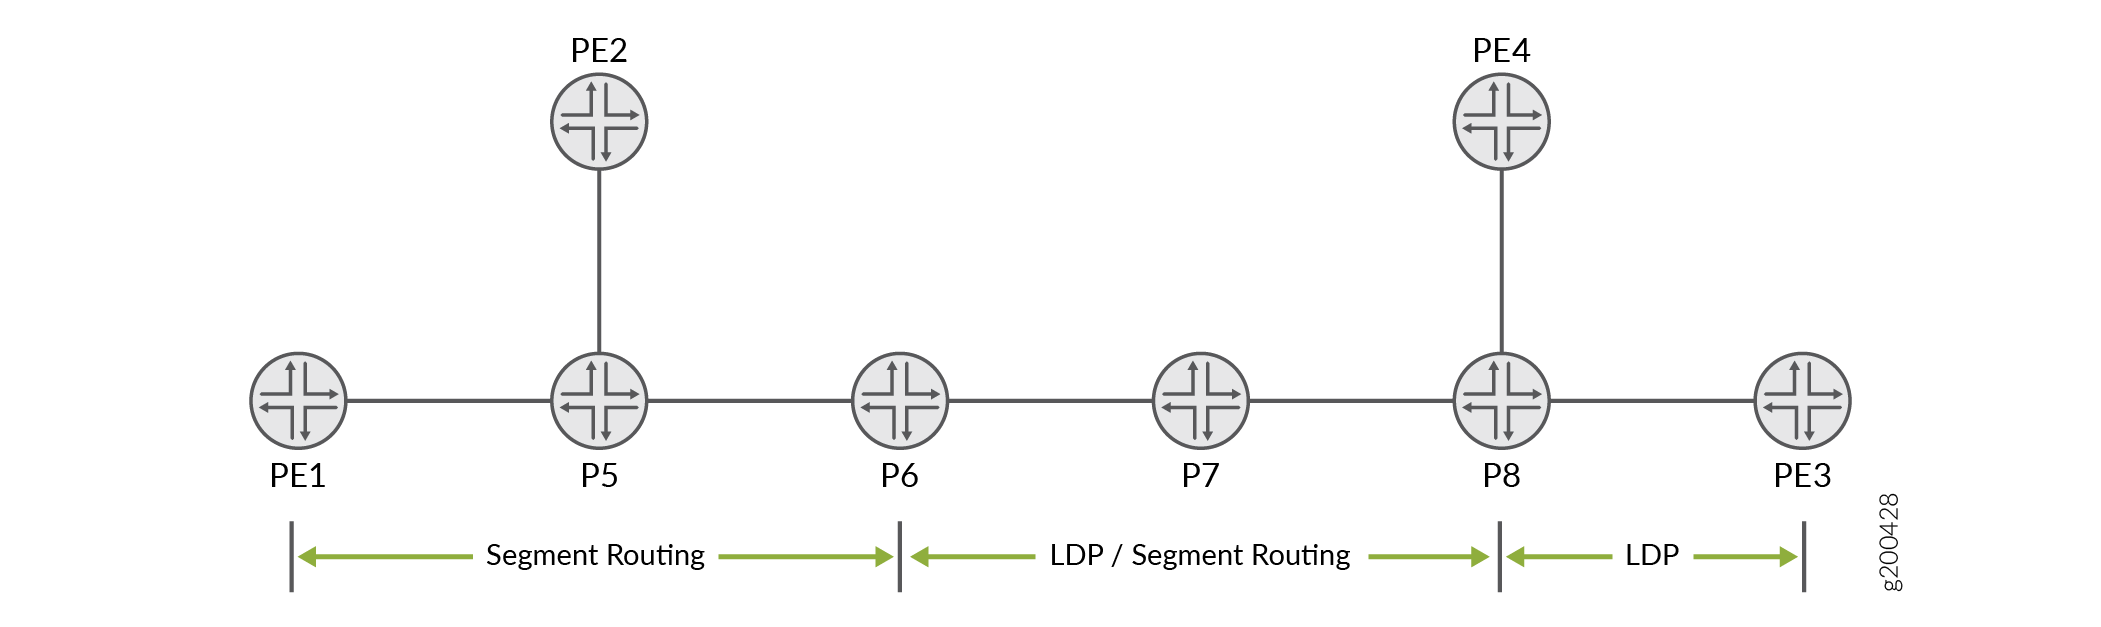 Stitching Segment Routing and LDP LSPs